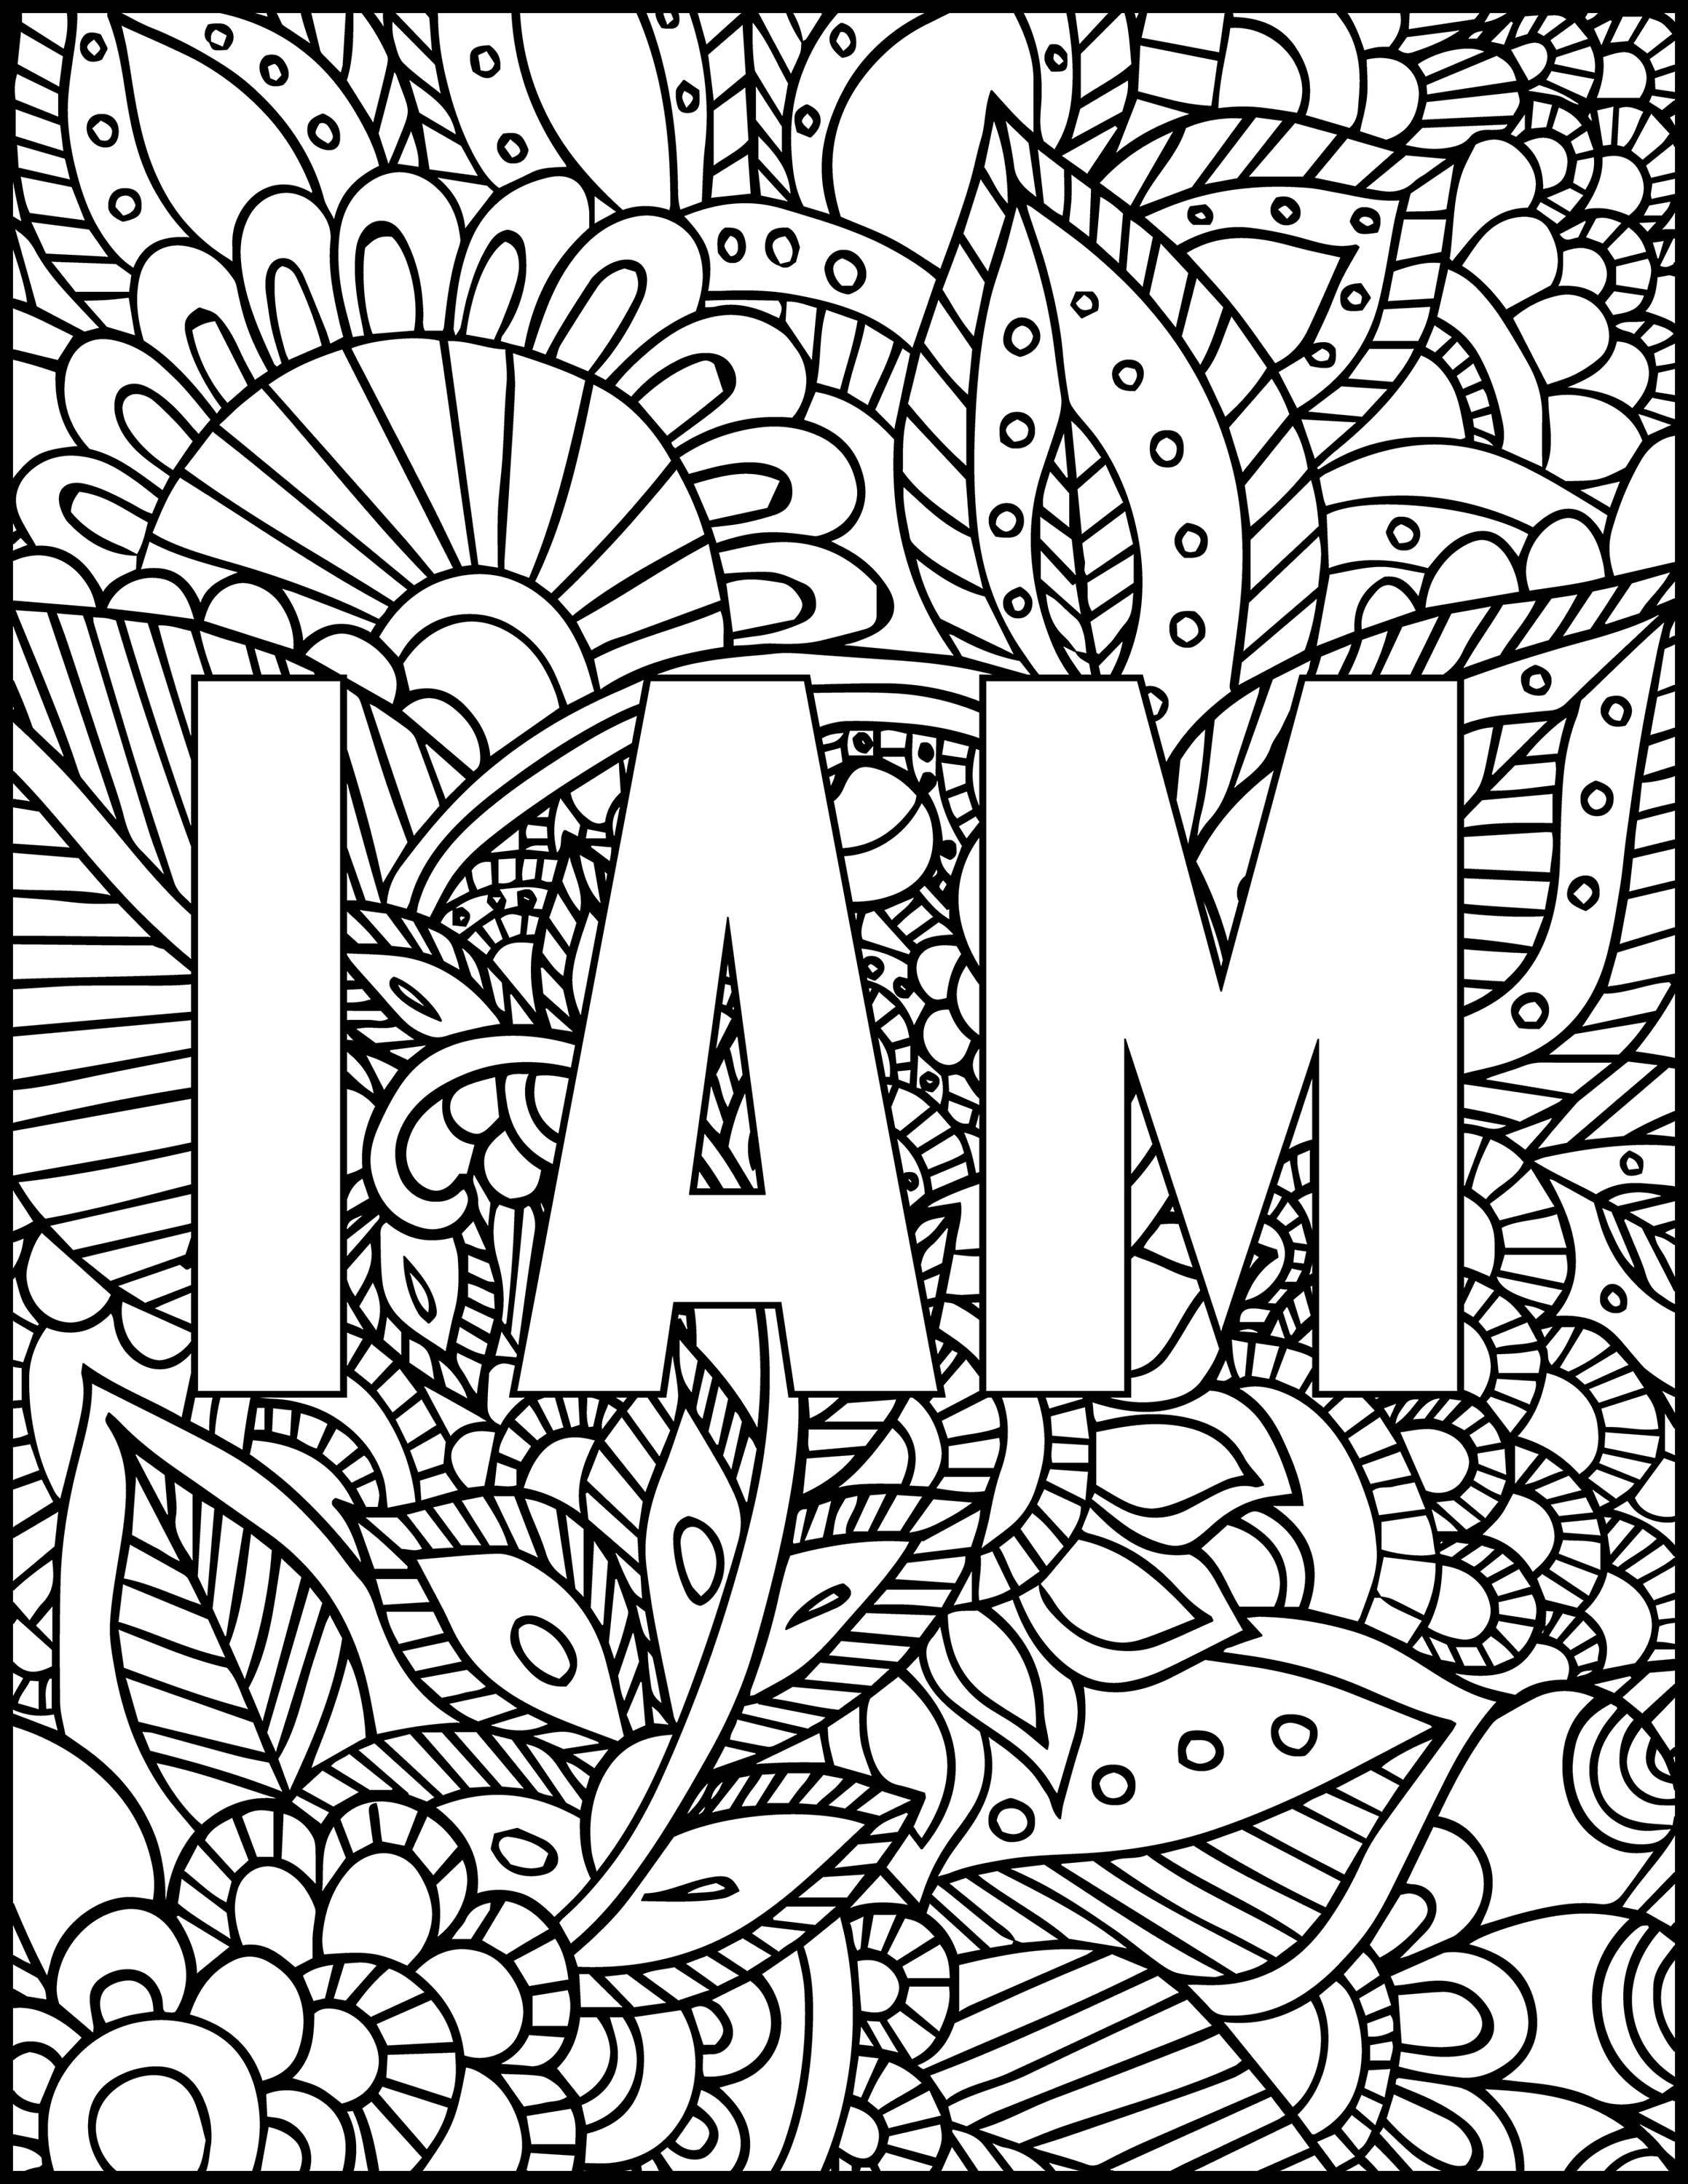 printable colouring pages printable colouring book pages printable coloring pages printable colouring pages